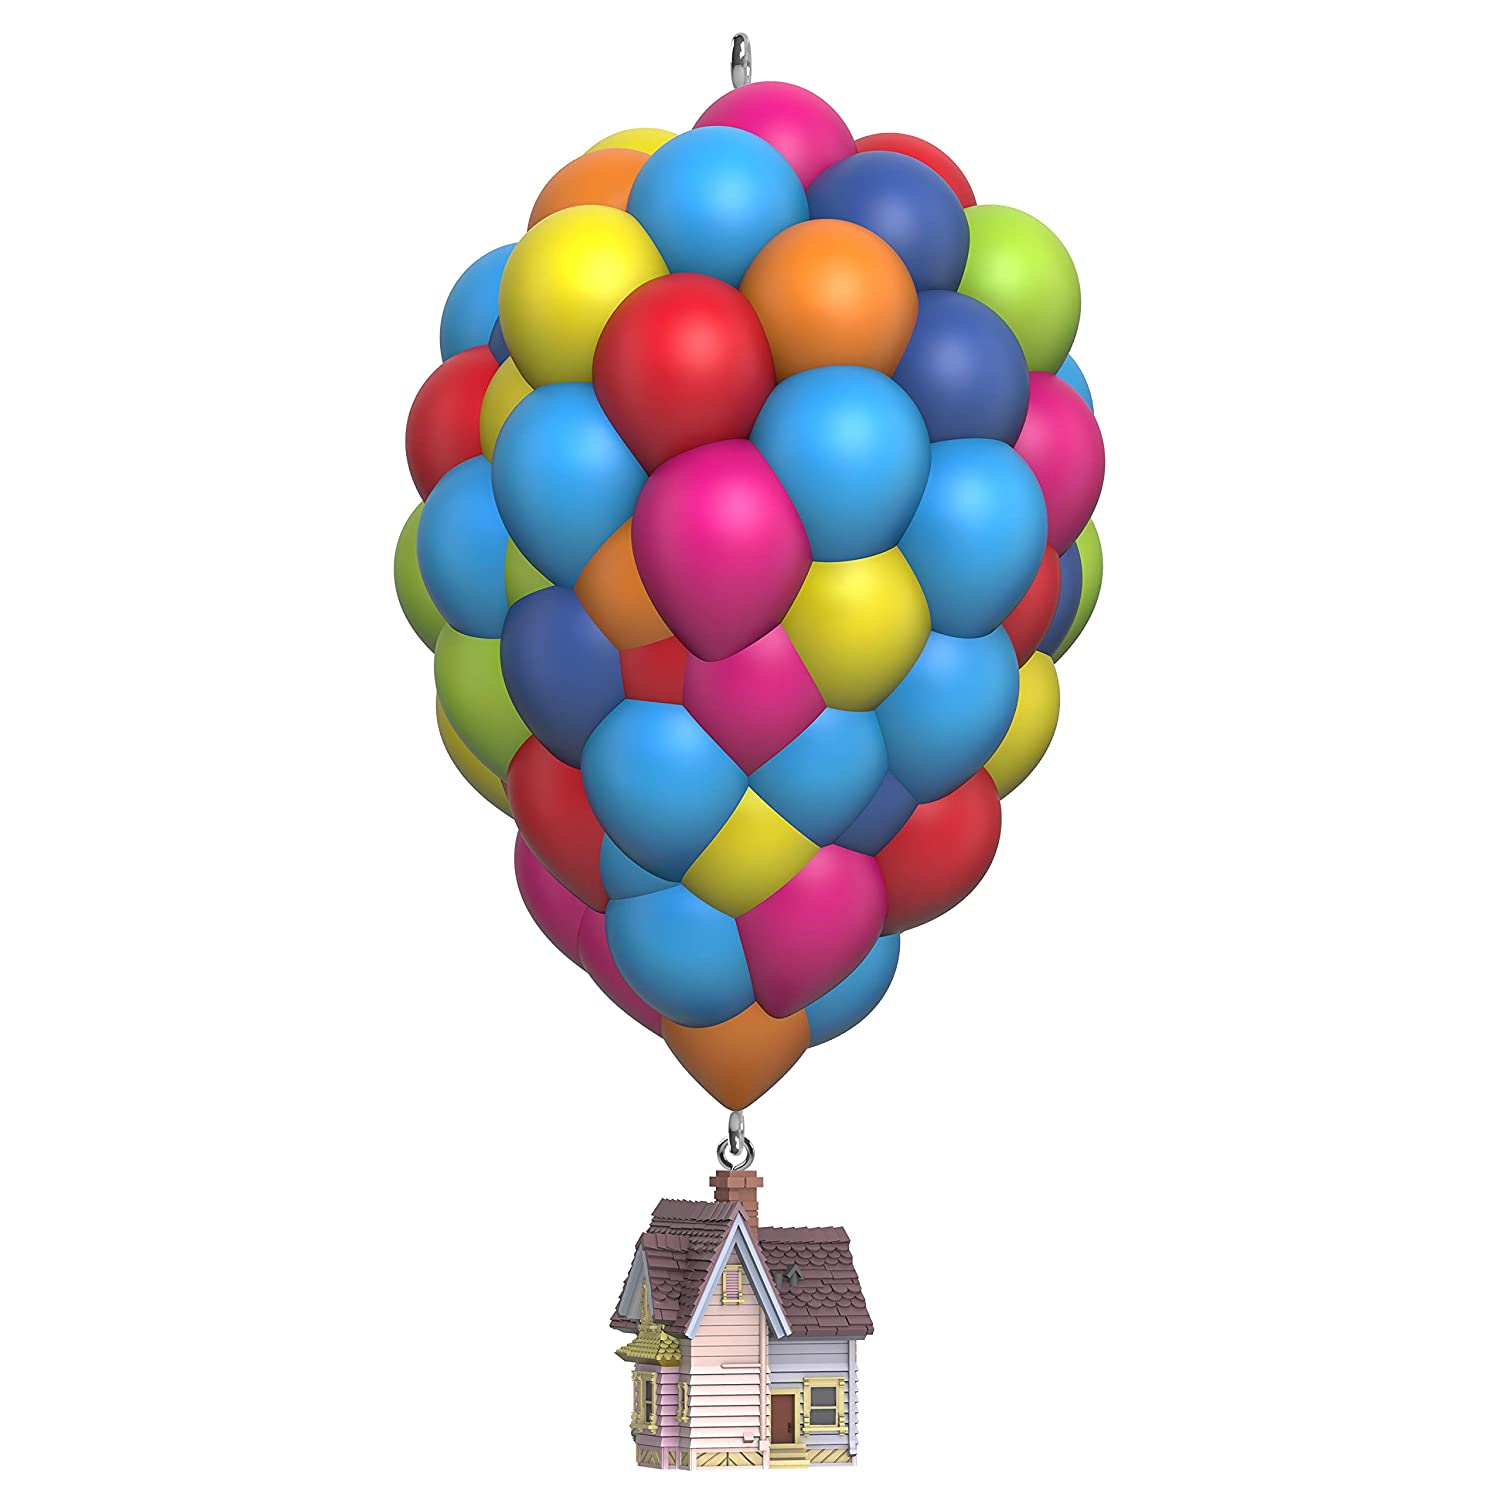 Hallmark Keepsake Christmas Ornaments 2019 Year Dated Disney//Pixar Up 10th Anniversary House with Balloons Musical Ornament Plays Married Life Song